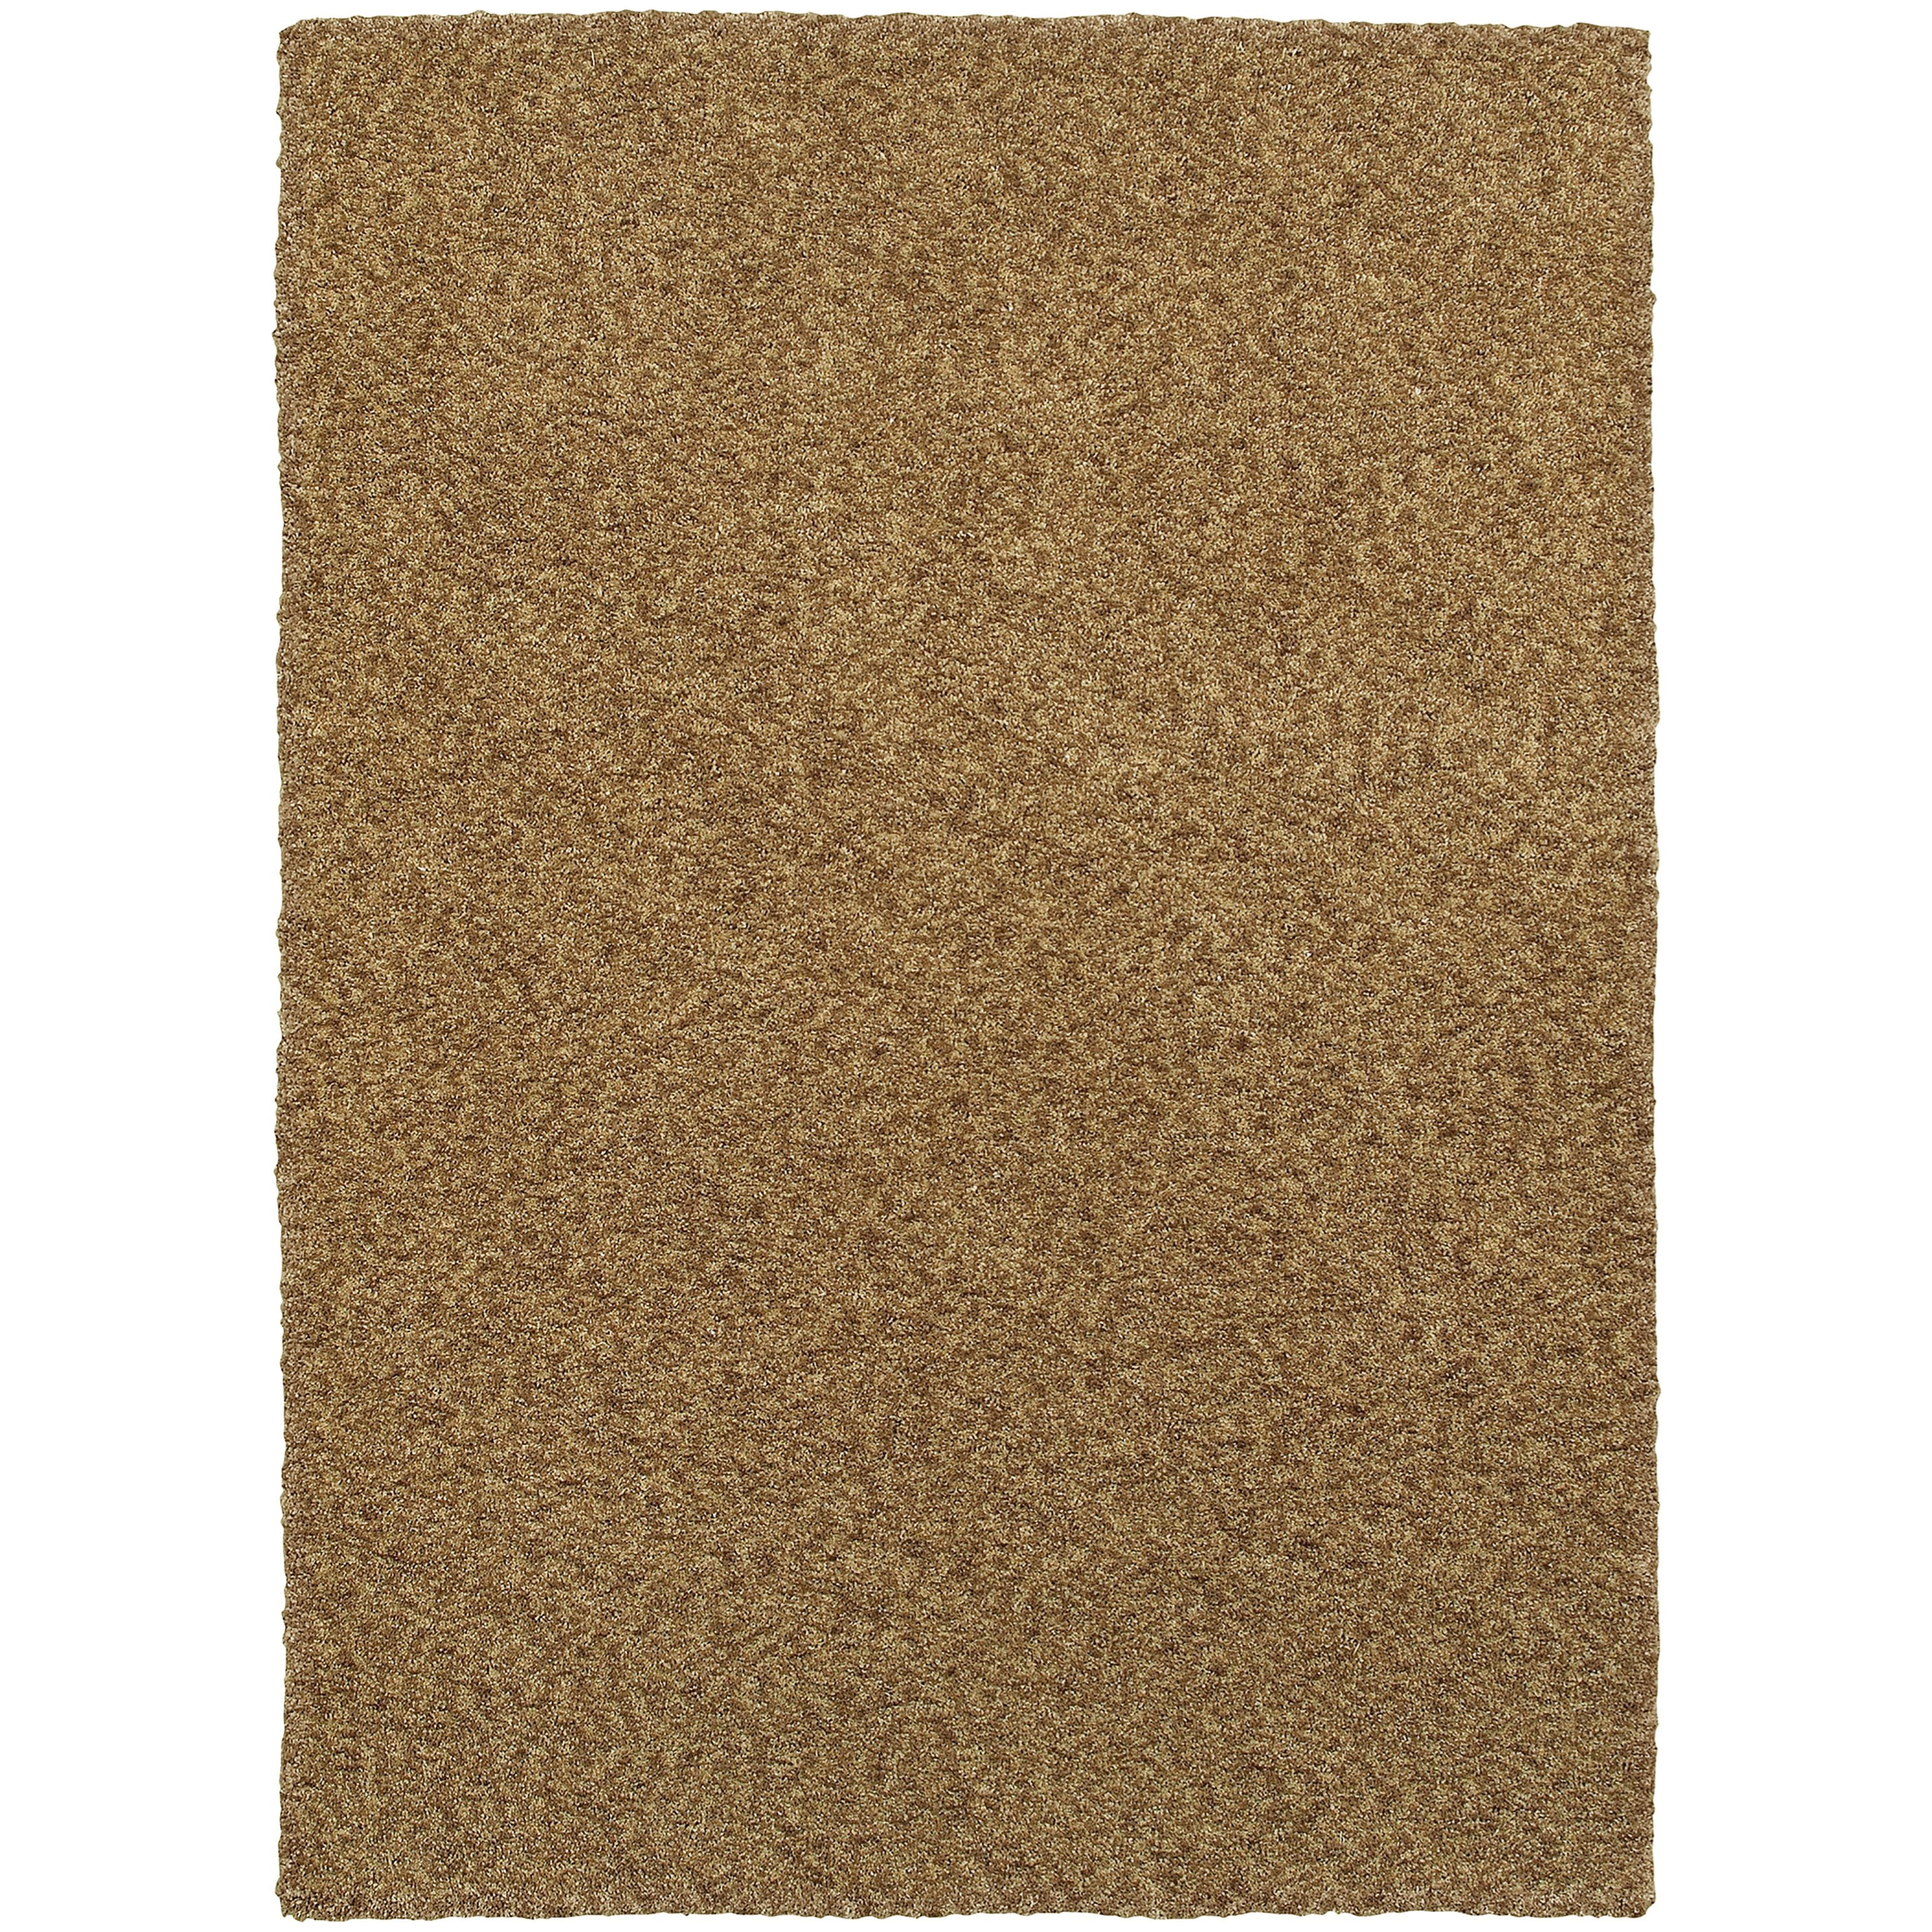 "5' 0"" X  7' 0"" Rectangle Area Rug"